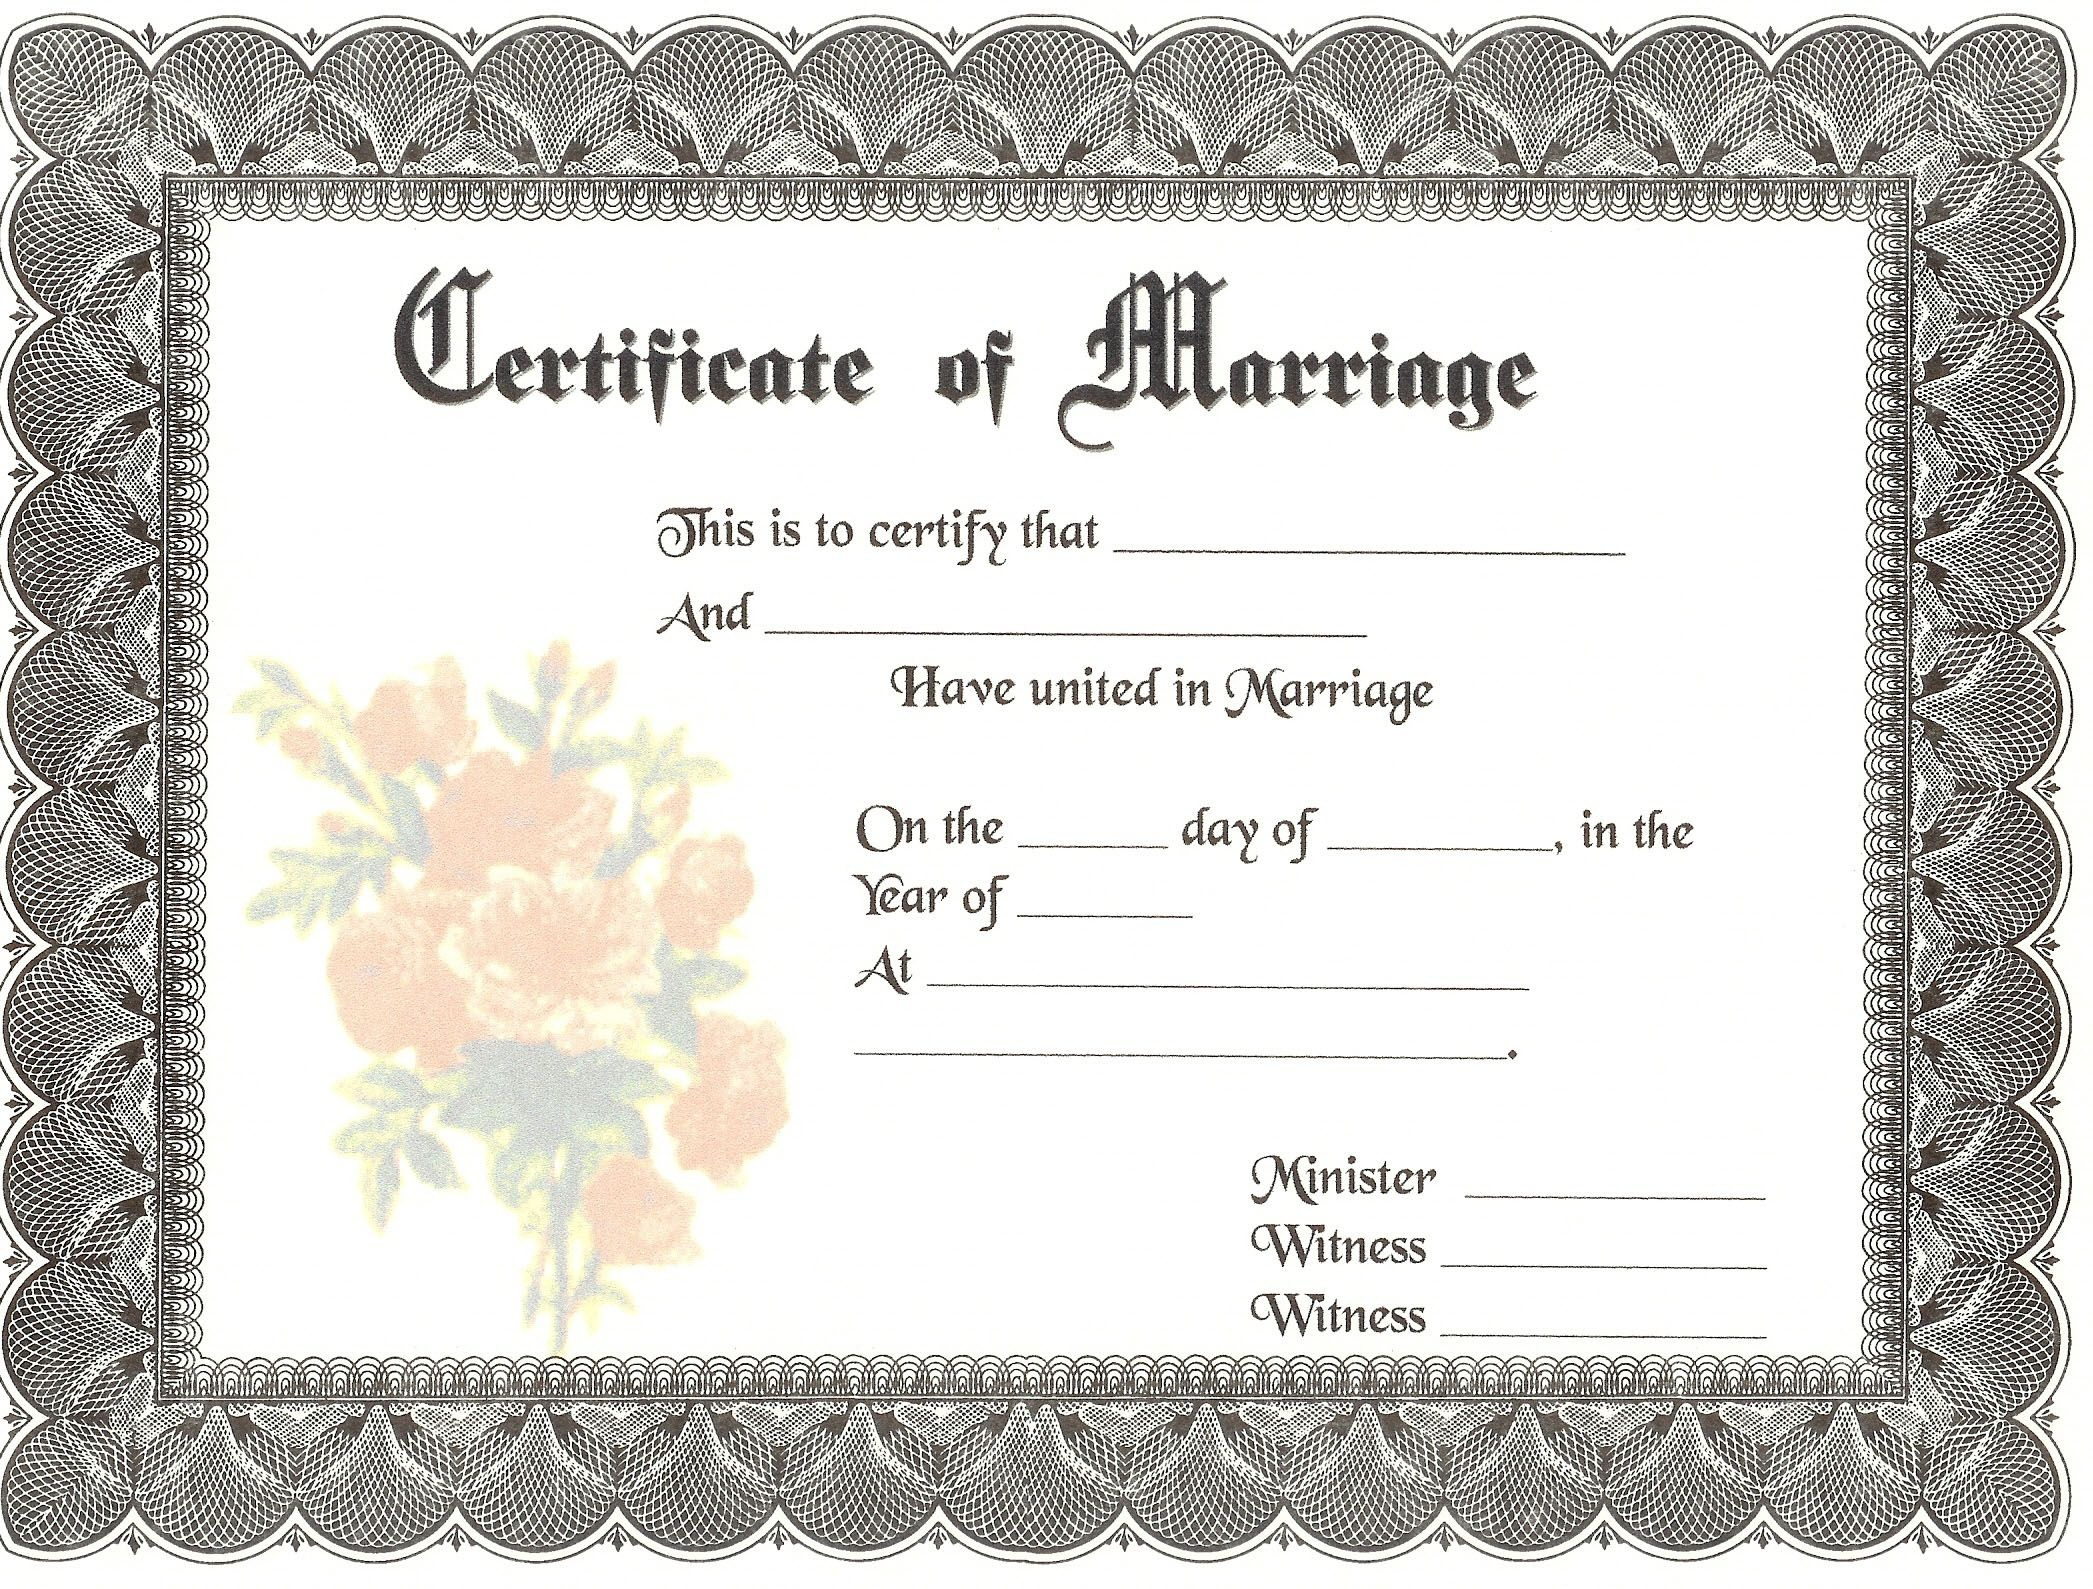 Blank Marriage Certificates | Download Blank Marriage Certificates - Free Printable Wedding Certificates